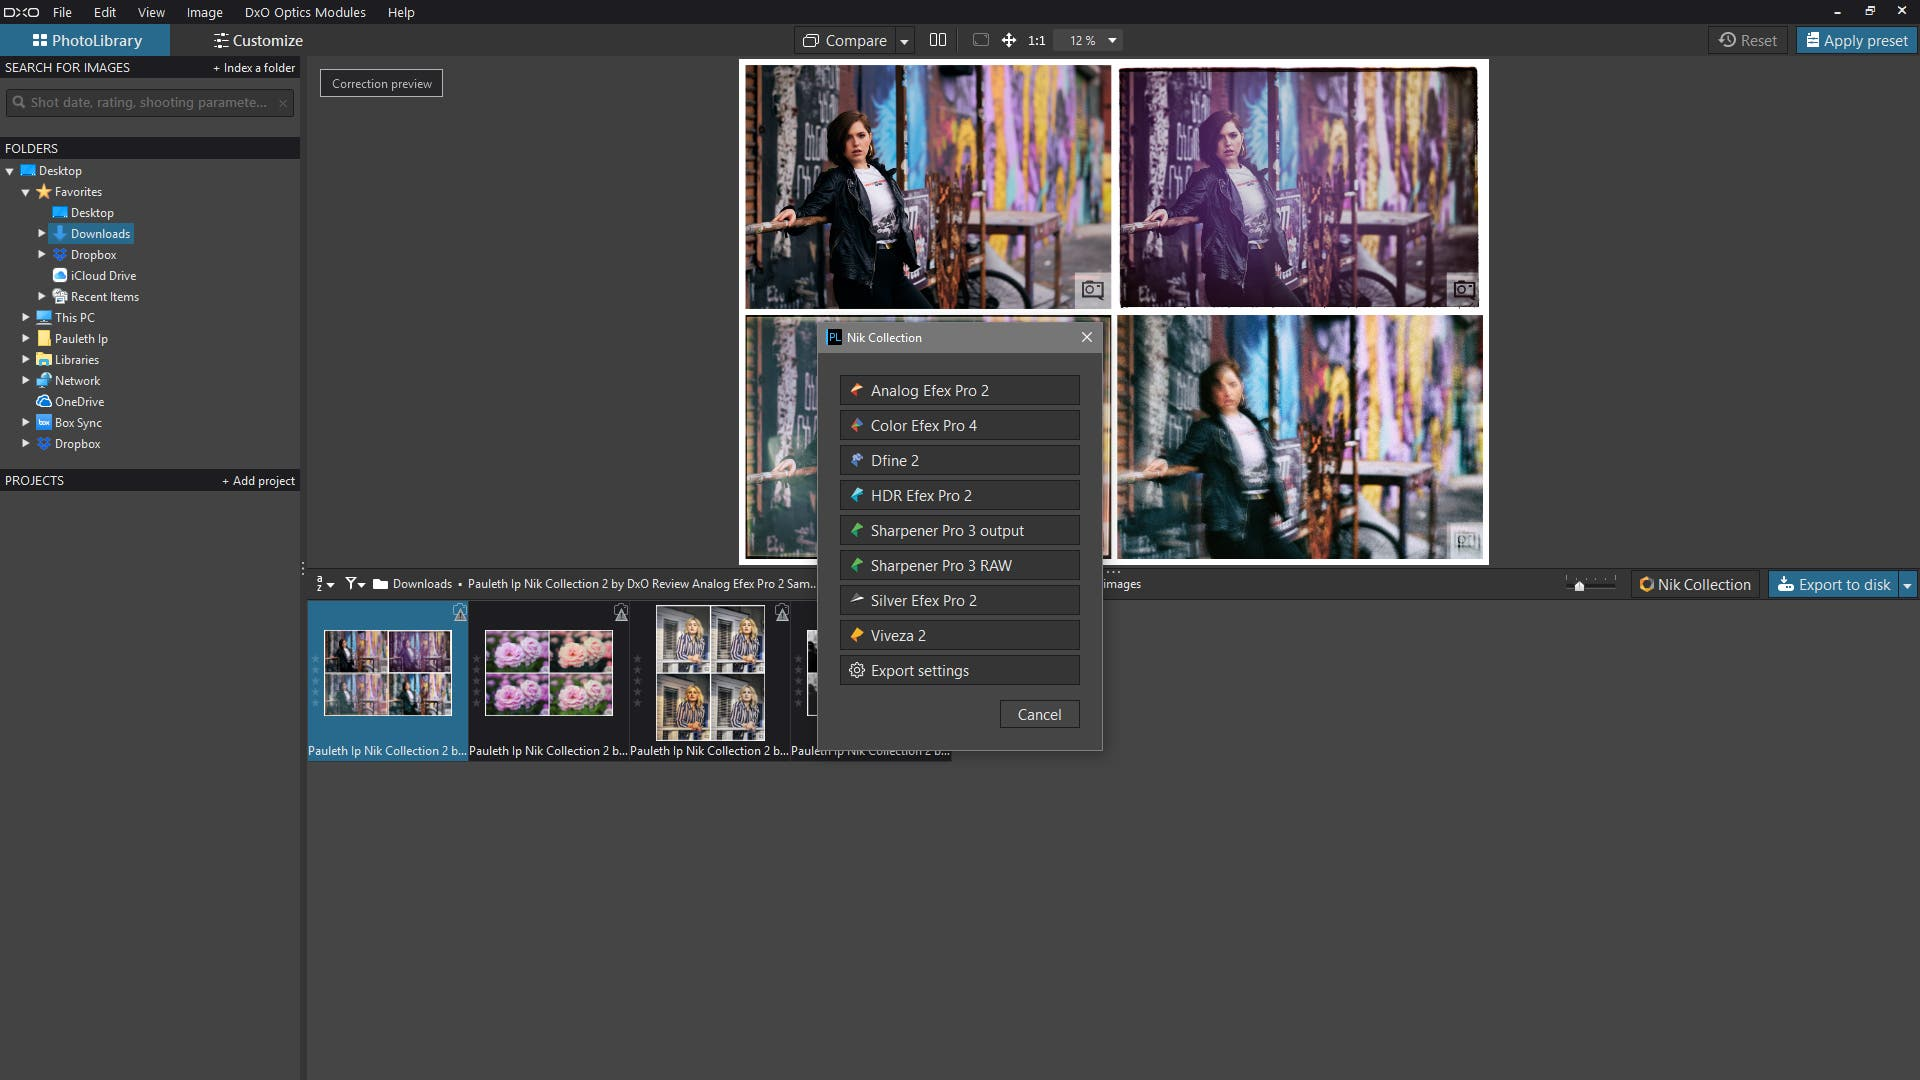 Software Review: Nik Collection 2 by DxO (Now with More